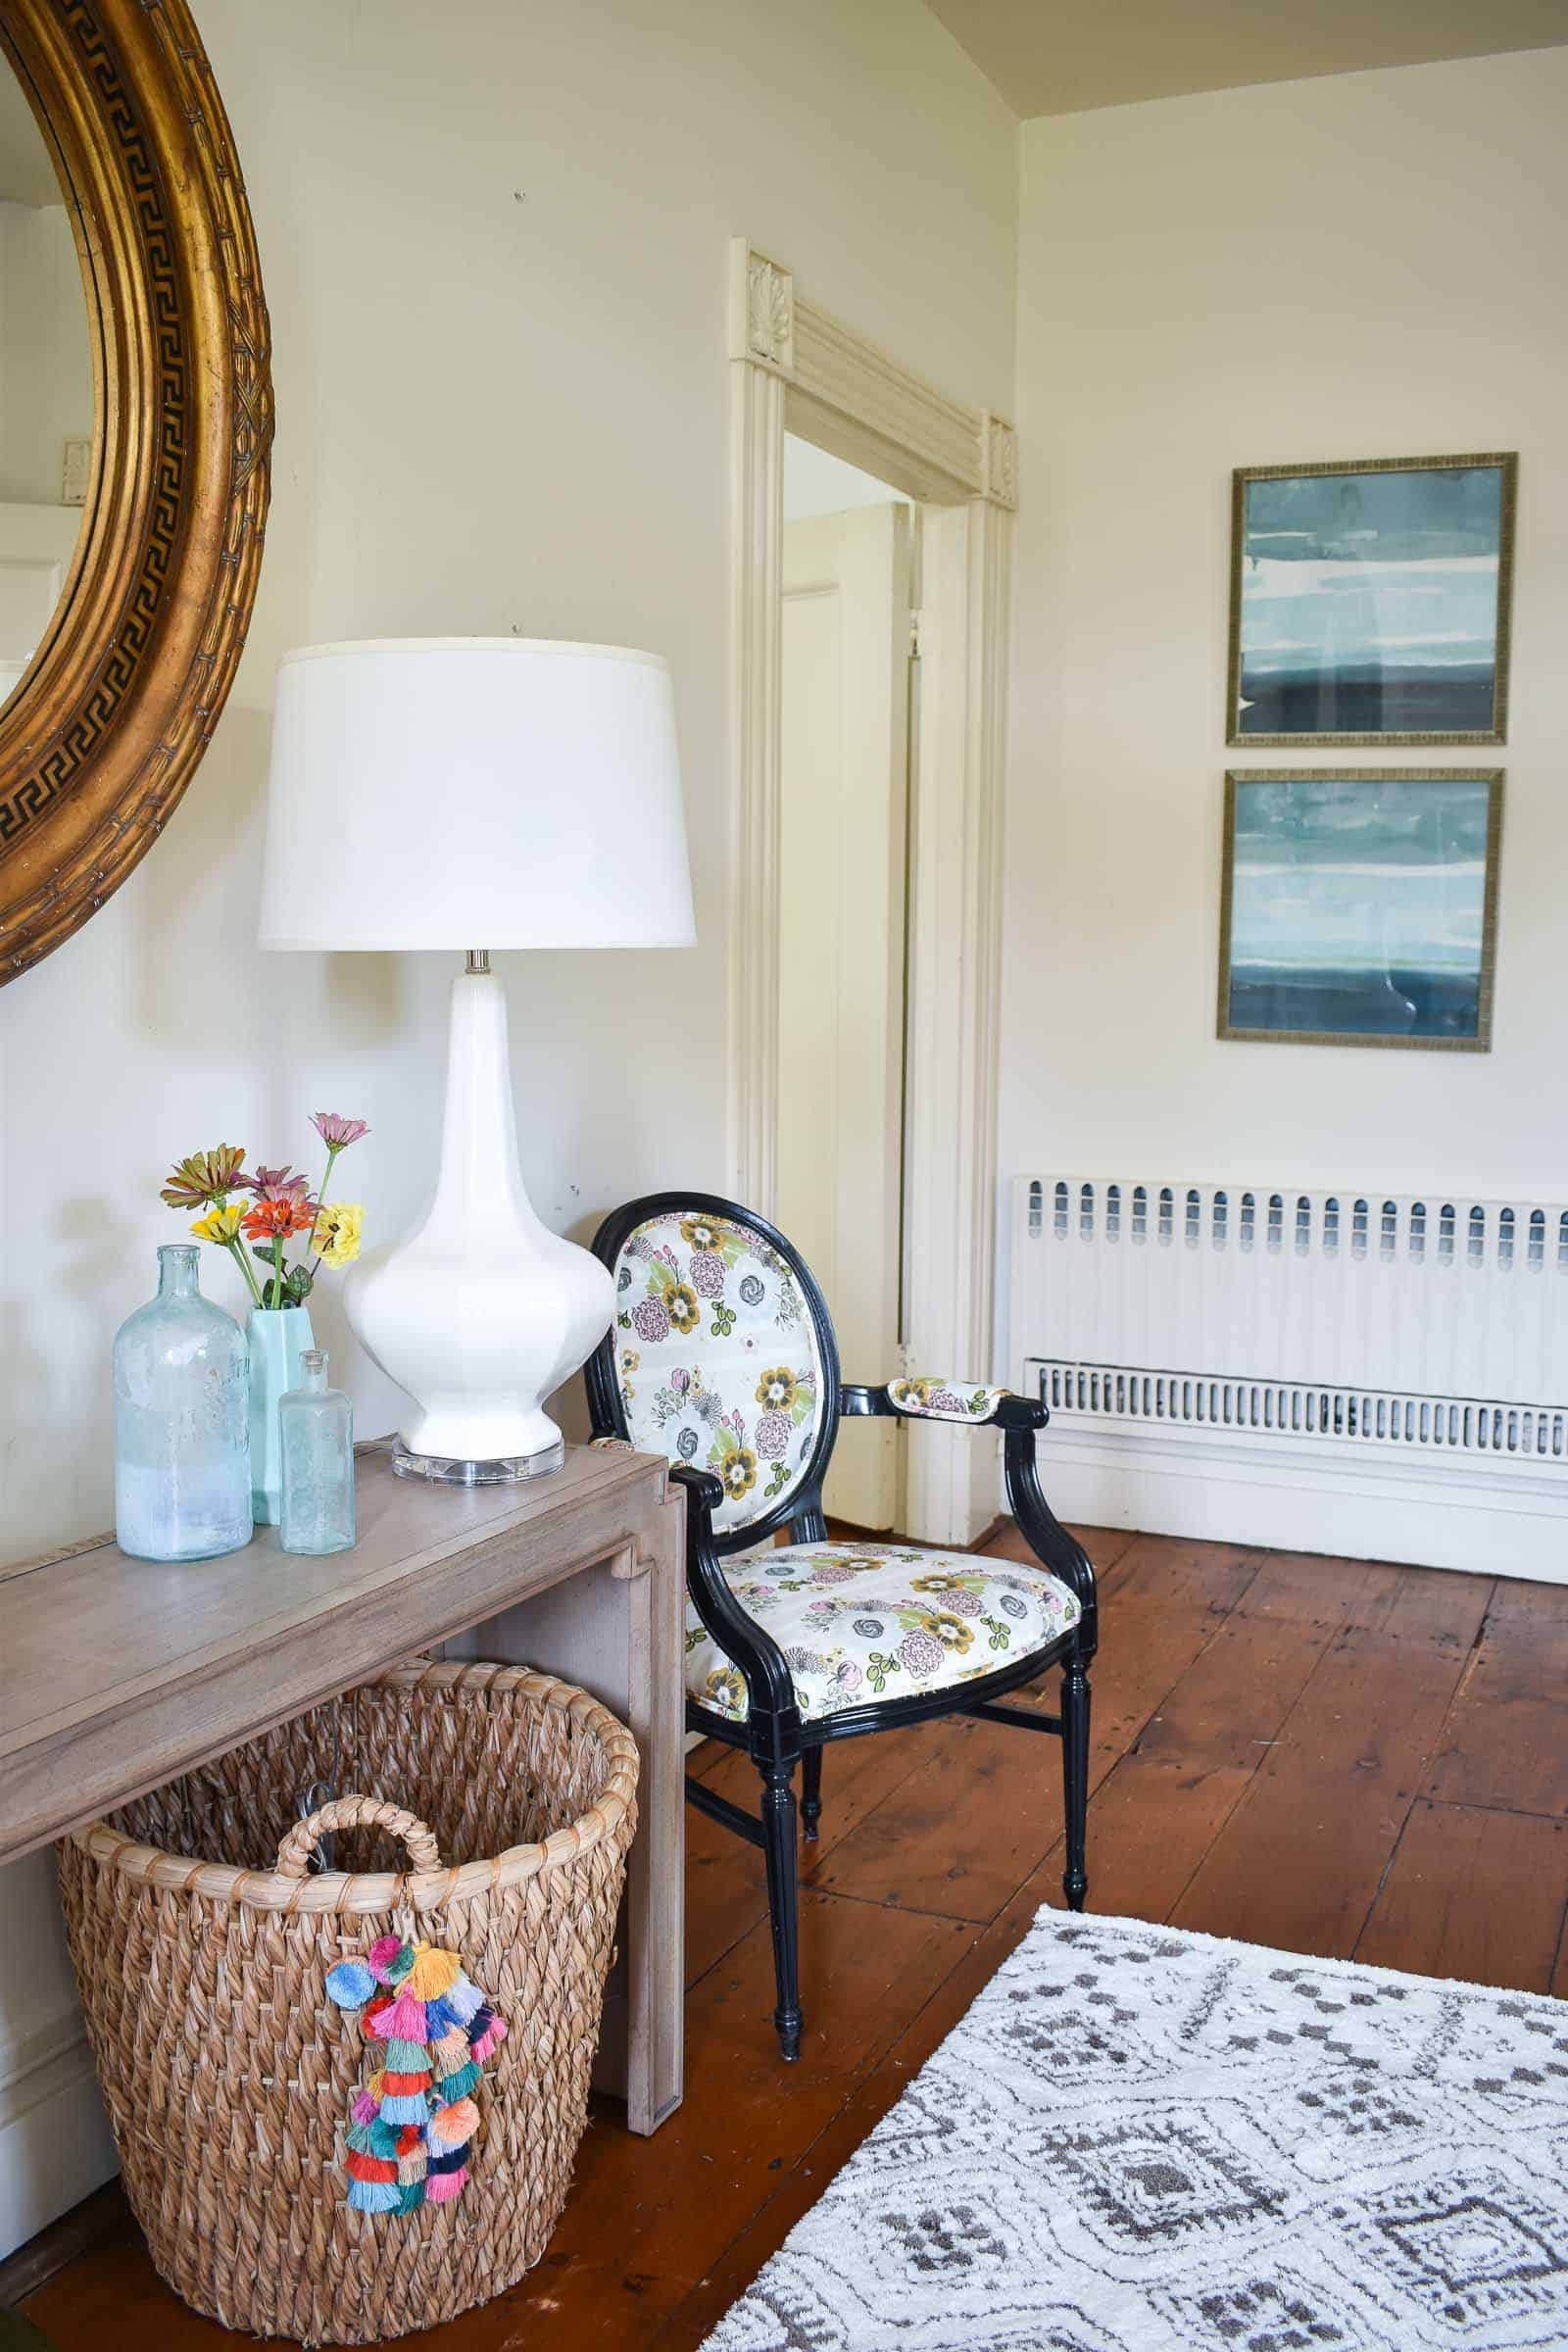 new artwork in foyer from Bassett furniture